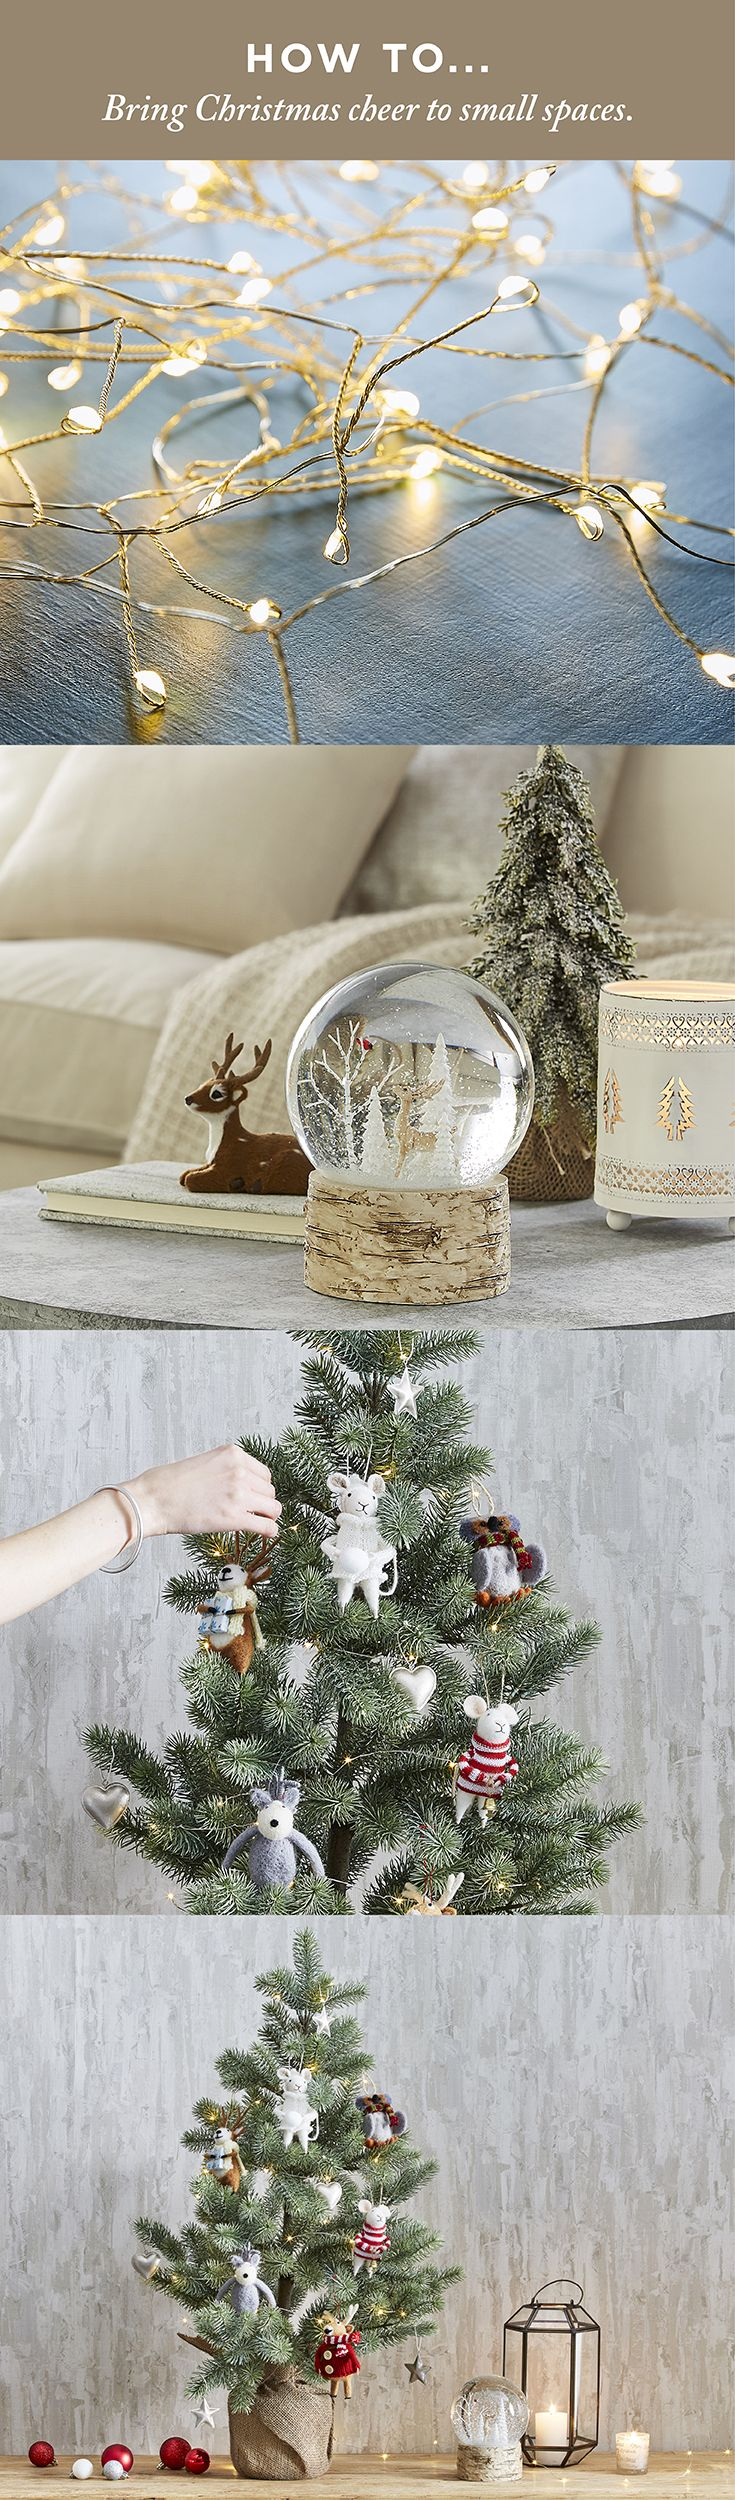 Can't fit a full-sized Christmas tree? Don't worry! Follow the link to find 5 nifty ways to decorate a small space for the Holidays. #christmas #christmasdecorating #bedbathntable